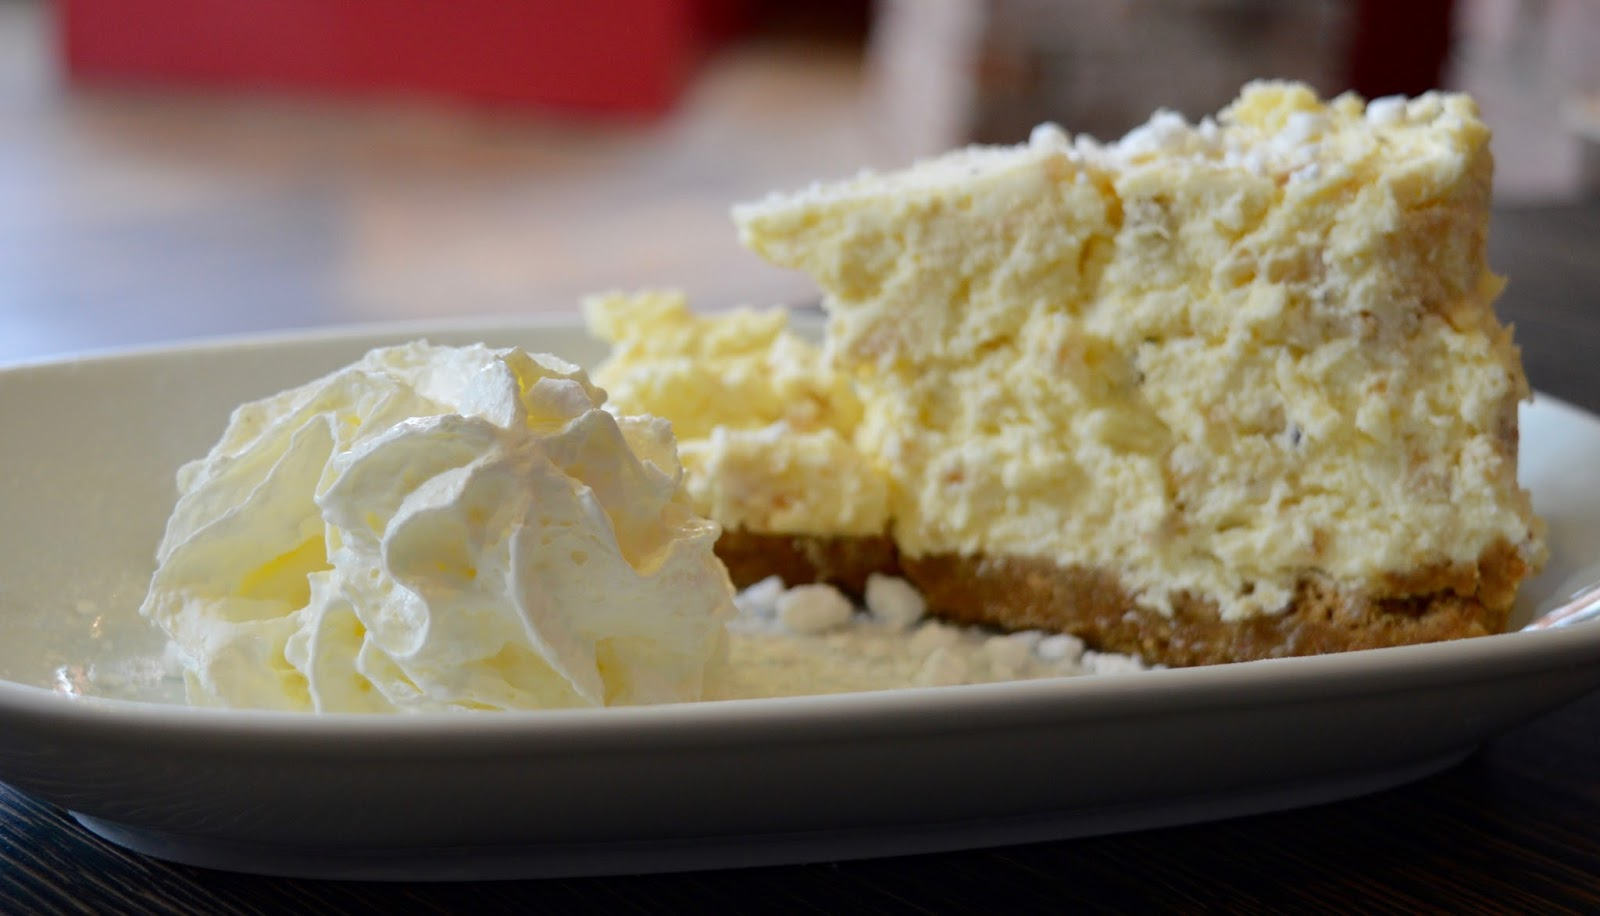 The best new restaurant in Whitley Bay - Evan's Bistro | Evening and Children's Menu Review  - homemade cheesecake